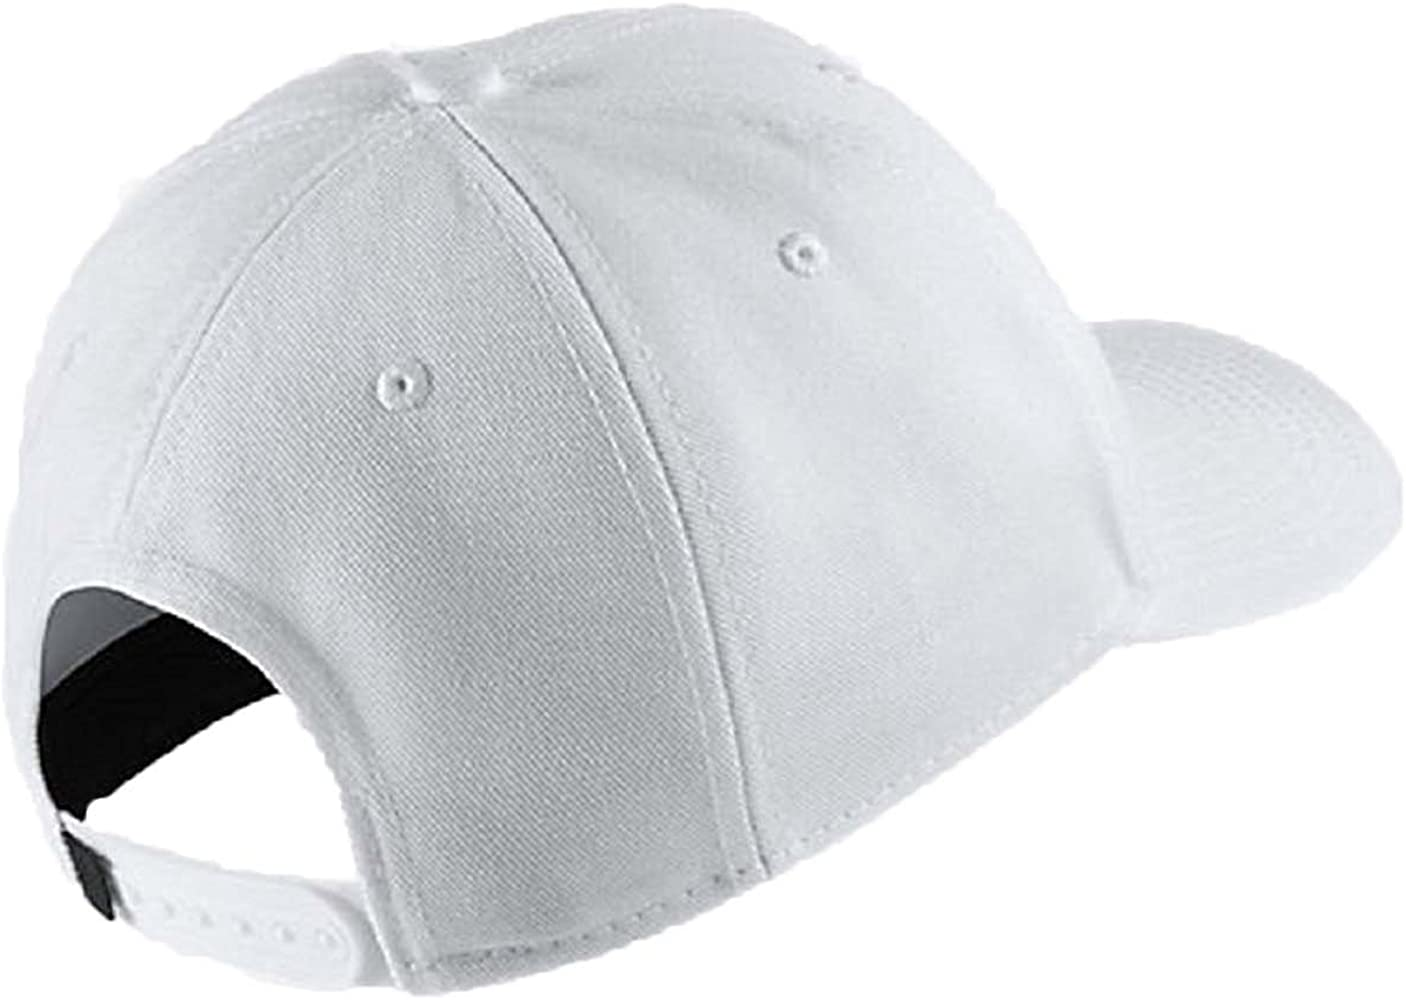 Nike Air Jordan Retro 4 Gorra - 921347 100, Blanco: Amazon.es ...